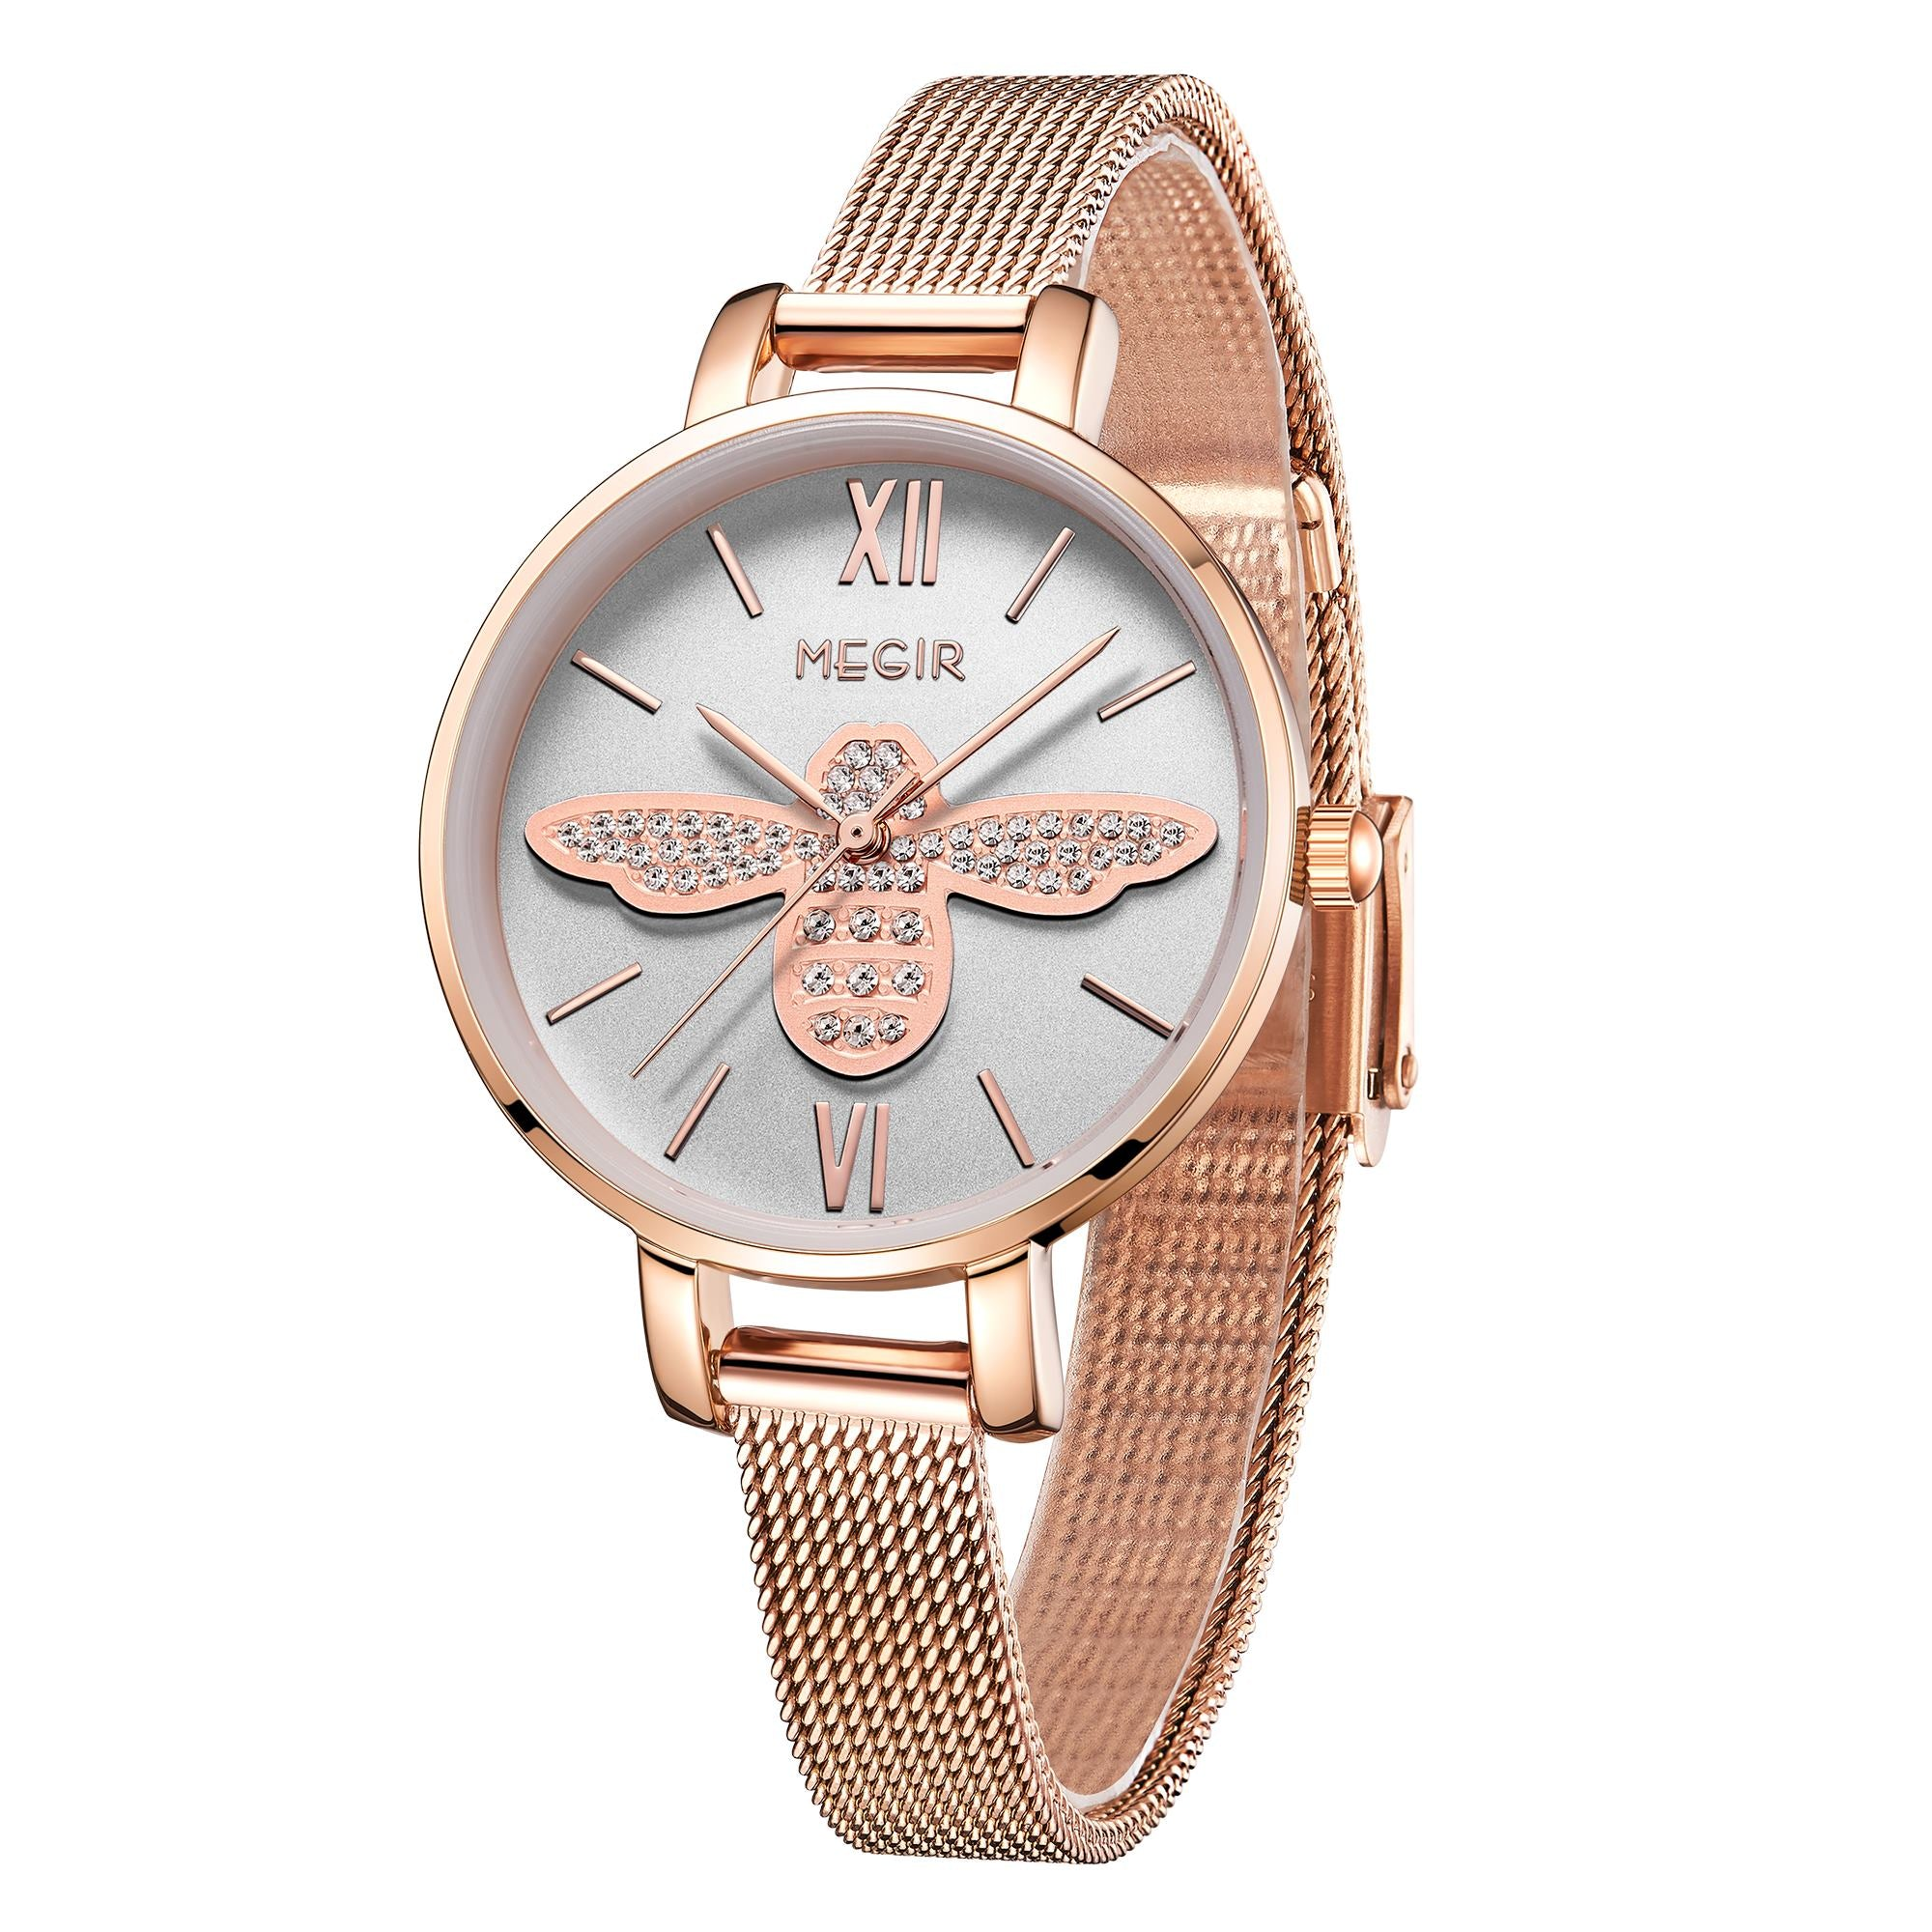 MEGIR Luxury Women Fashion Ladies Watches 7020